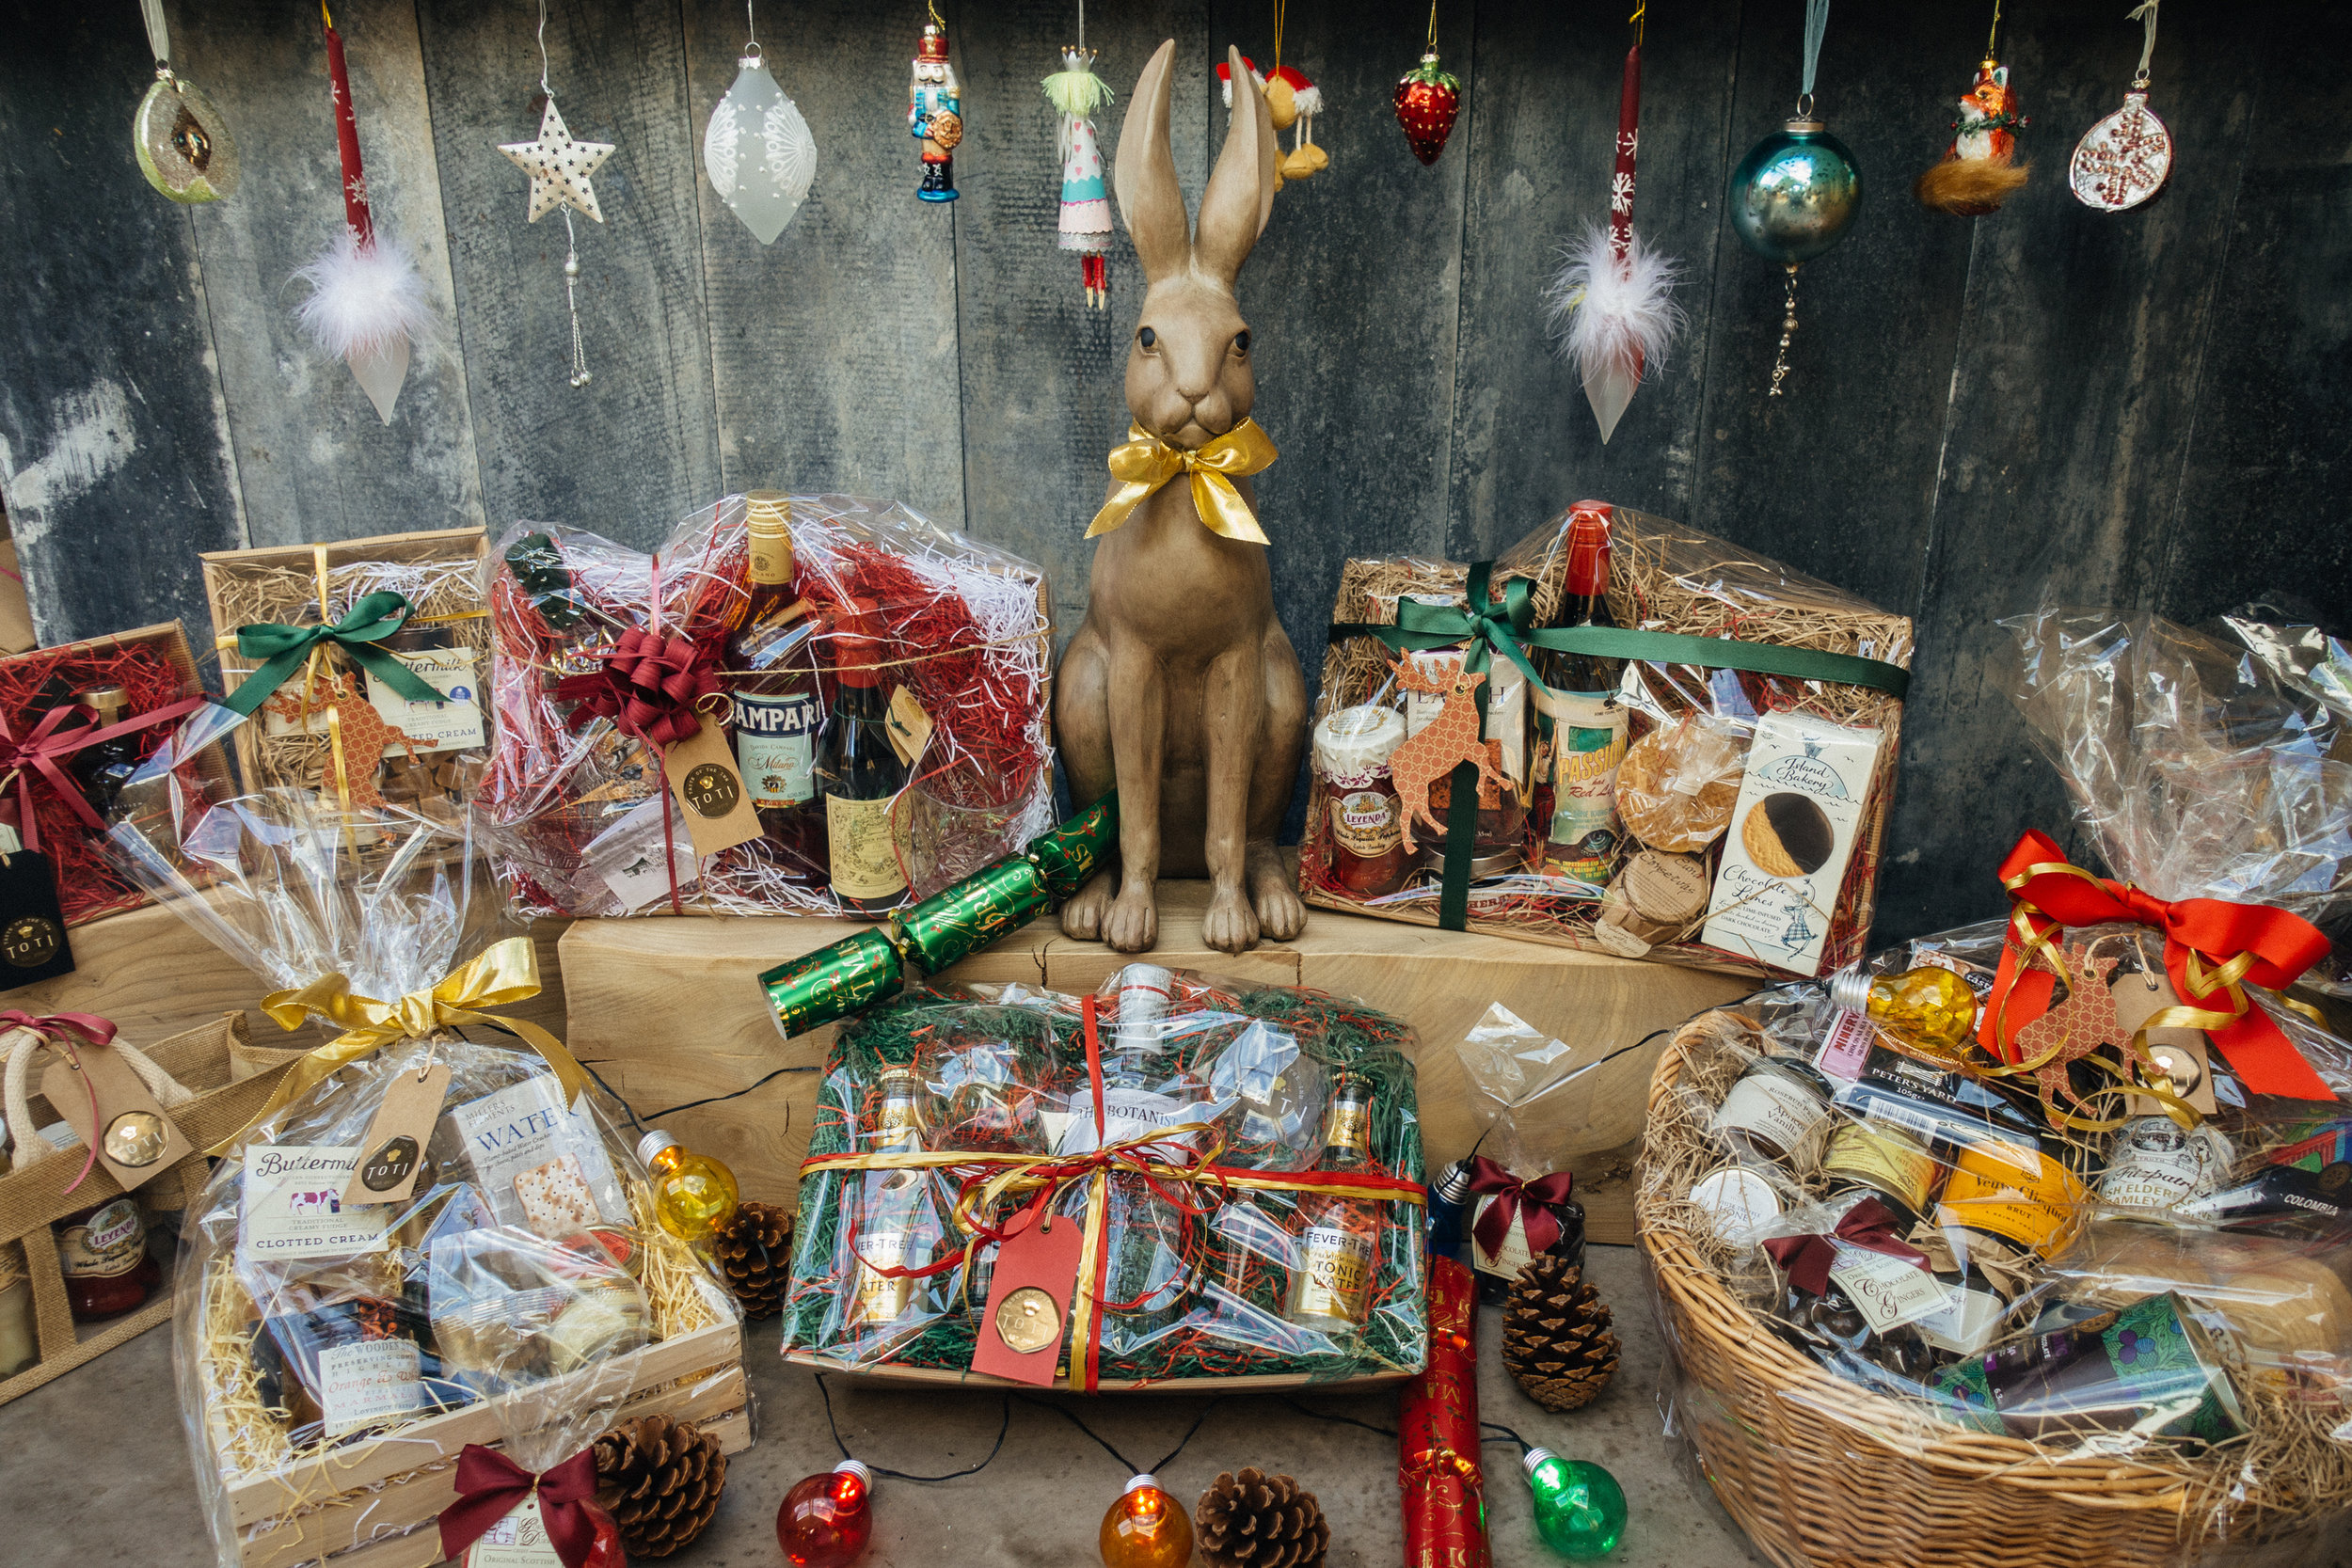 IN TOTI - Who doesn't love a littleTOTI at Christmas…